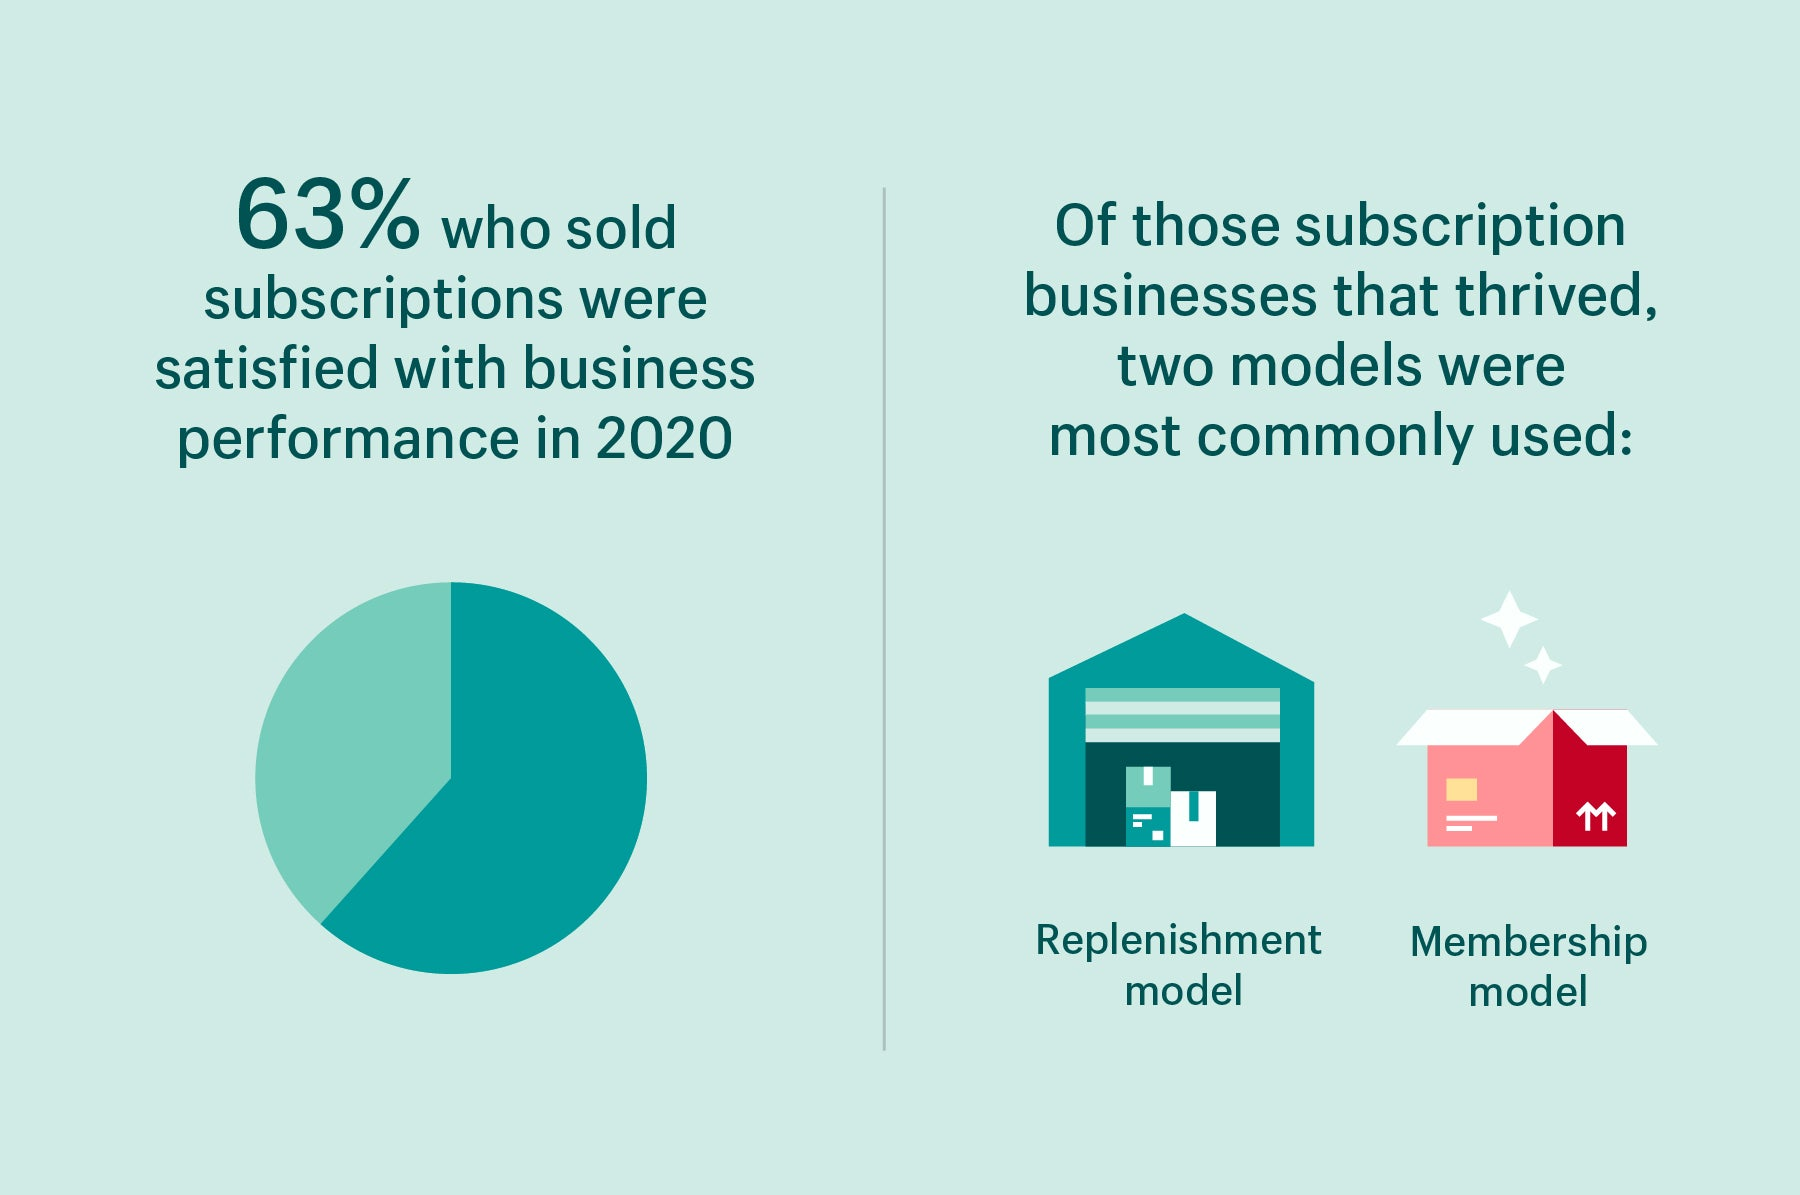 63% performance satisfaction among businesses who sold subscriptions / Two top subscription models were replenishment and membership